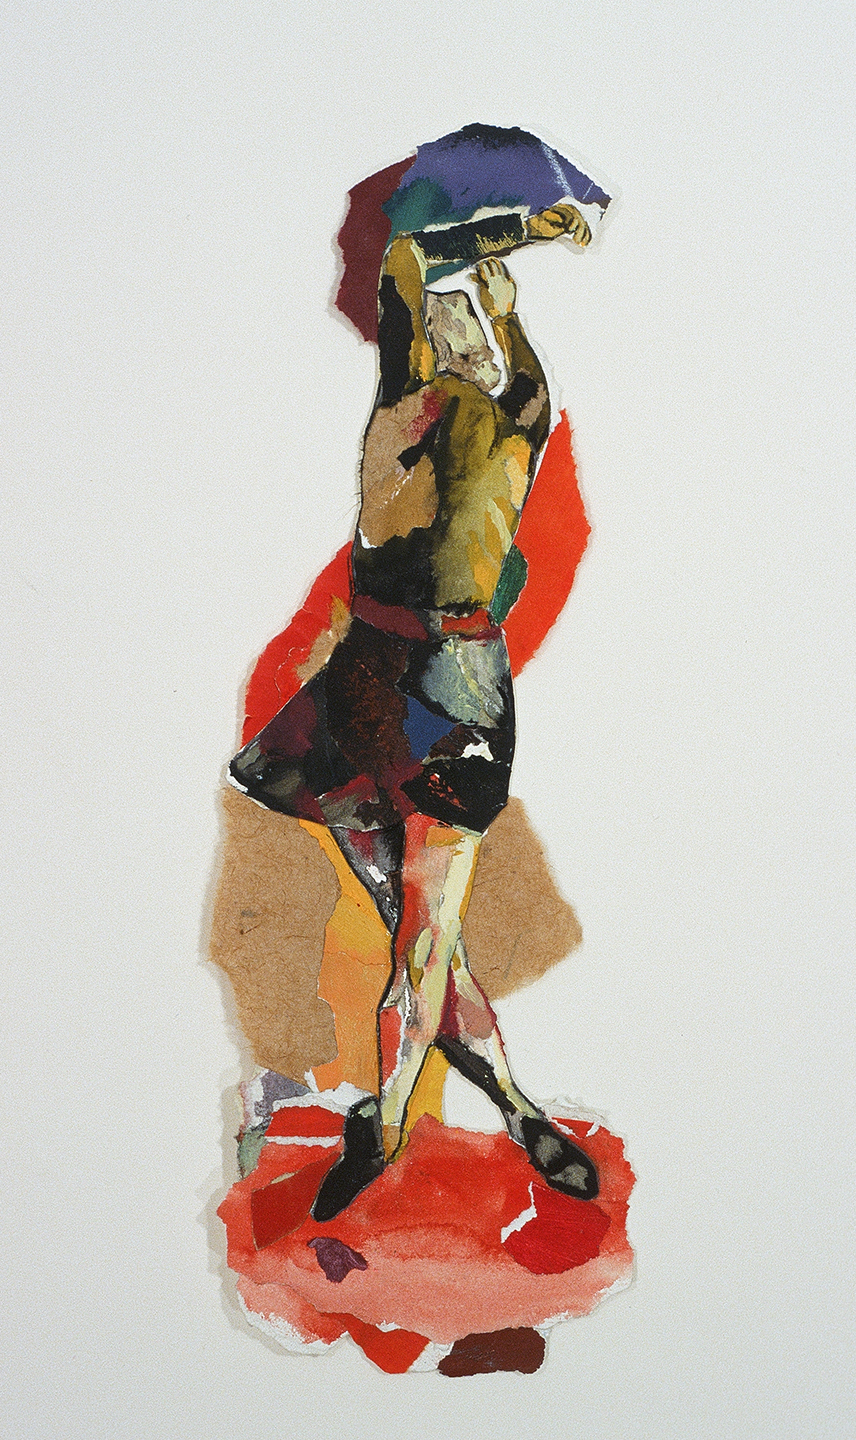 "Sans titre, 1999, 41 x 12 cm - 16"" x 5"",  techniques mixtes sur papier - mixed media on paper."